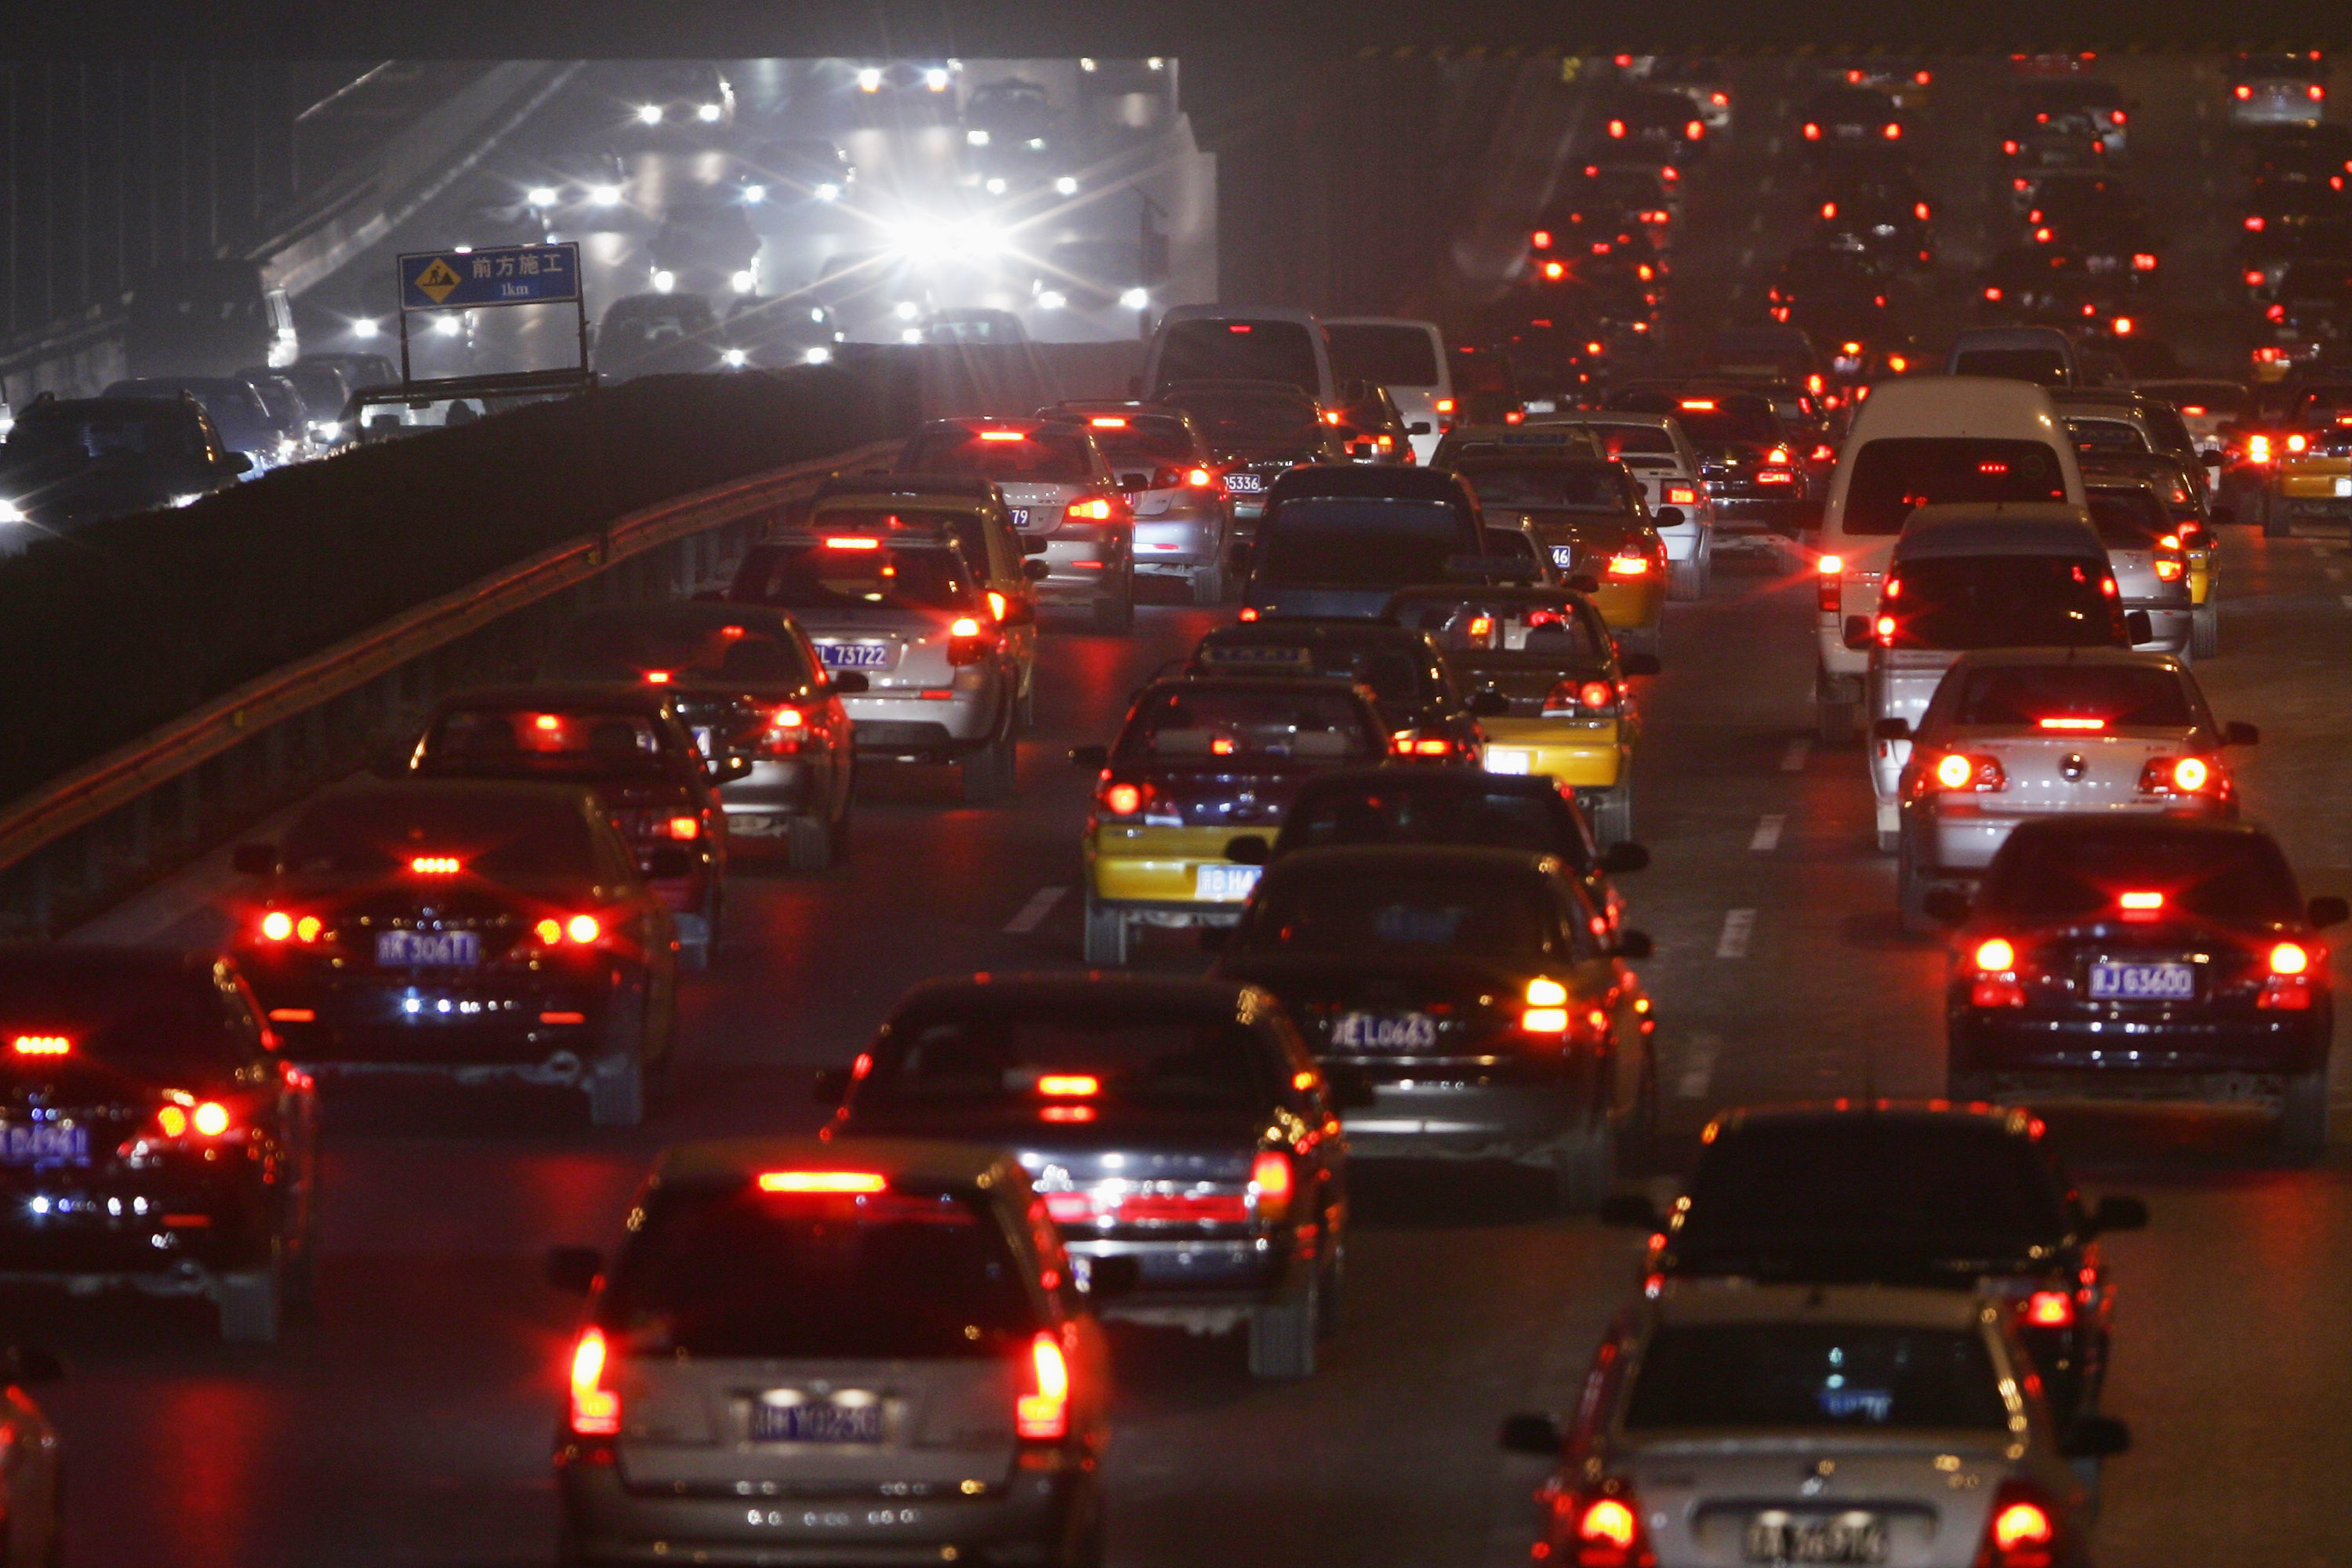 Beijing To Raise Car Emission Standards For 2008 Olympics